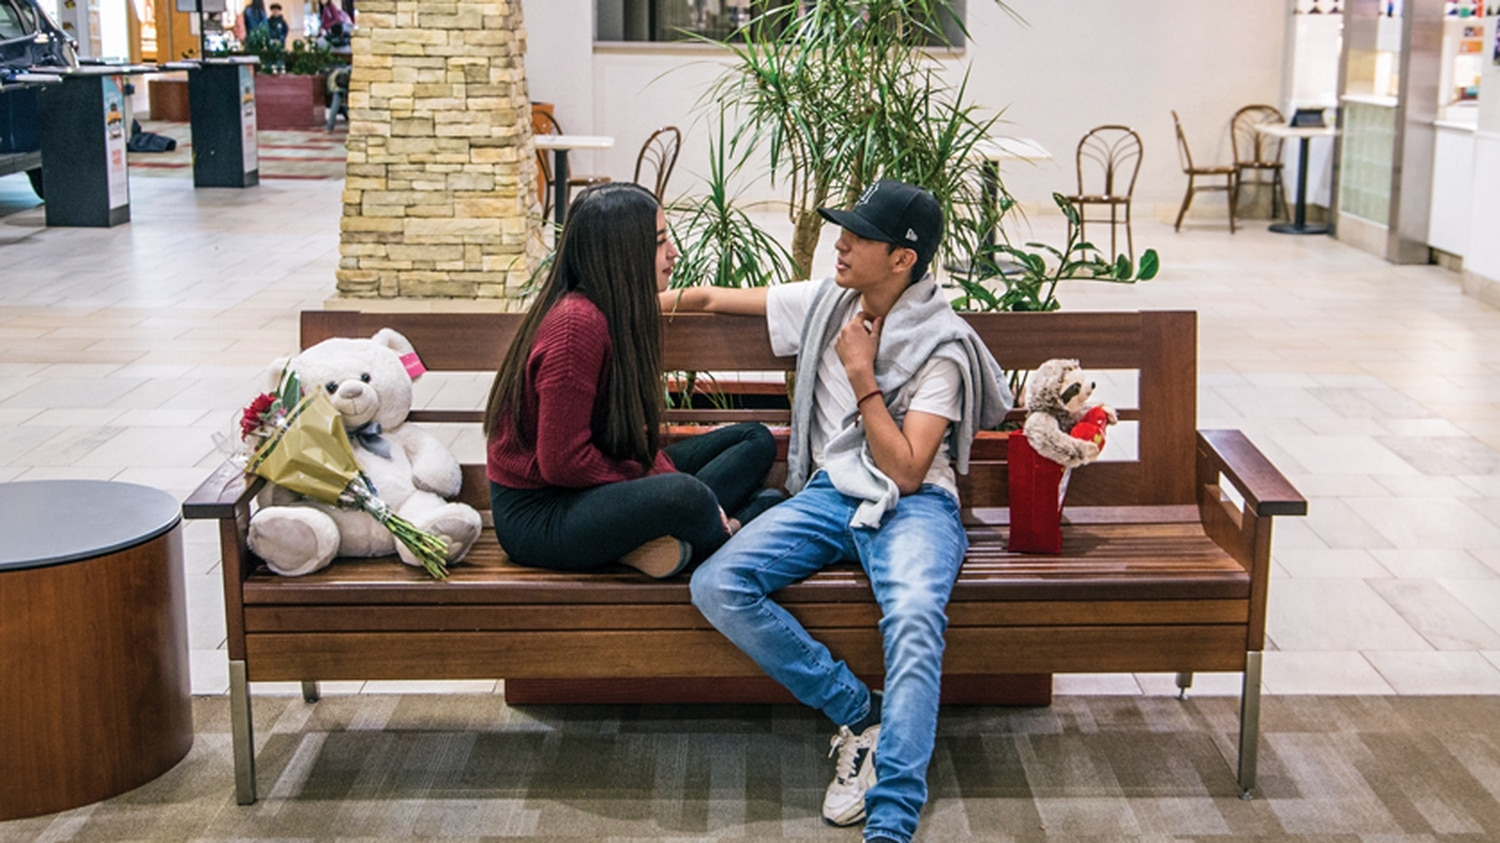 Mall seating offers a quiet, almost private date for two teens.